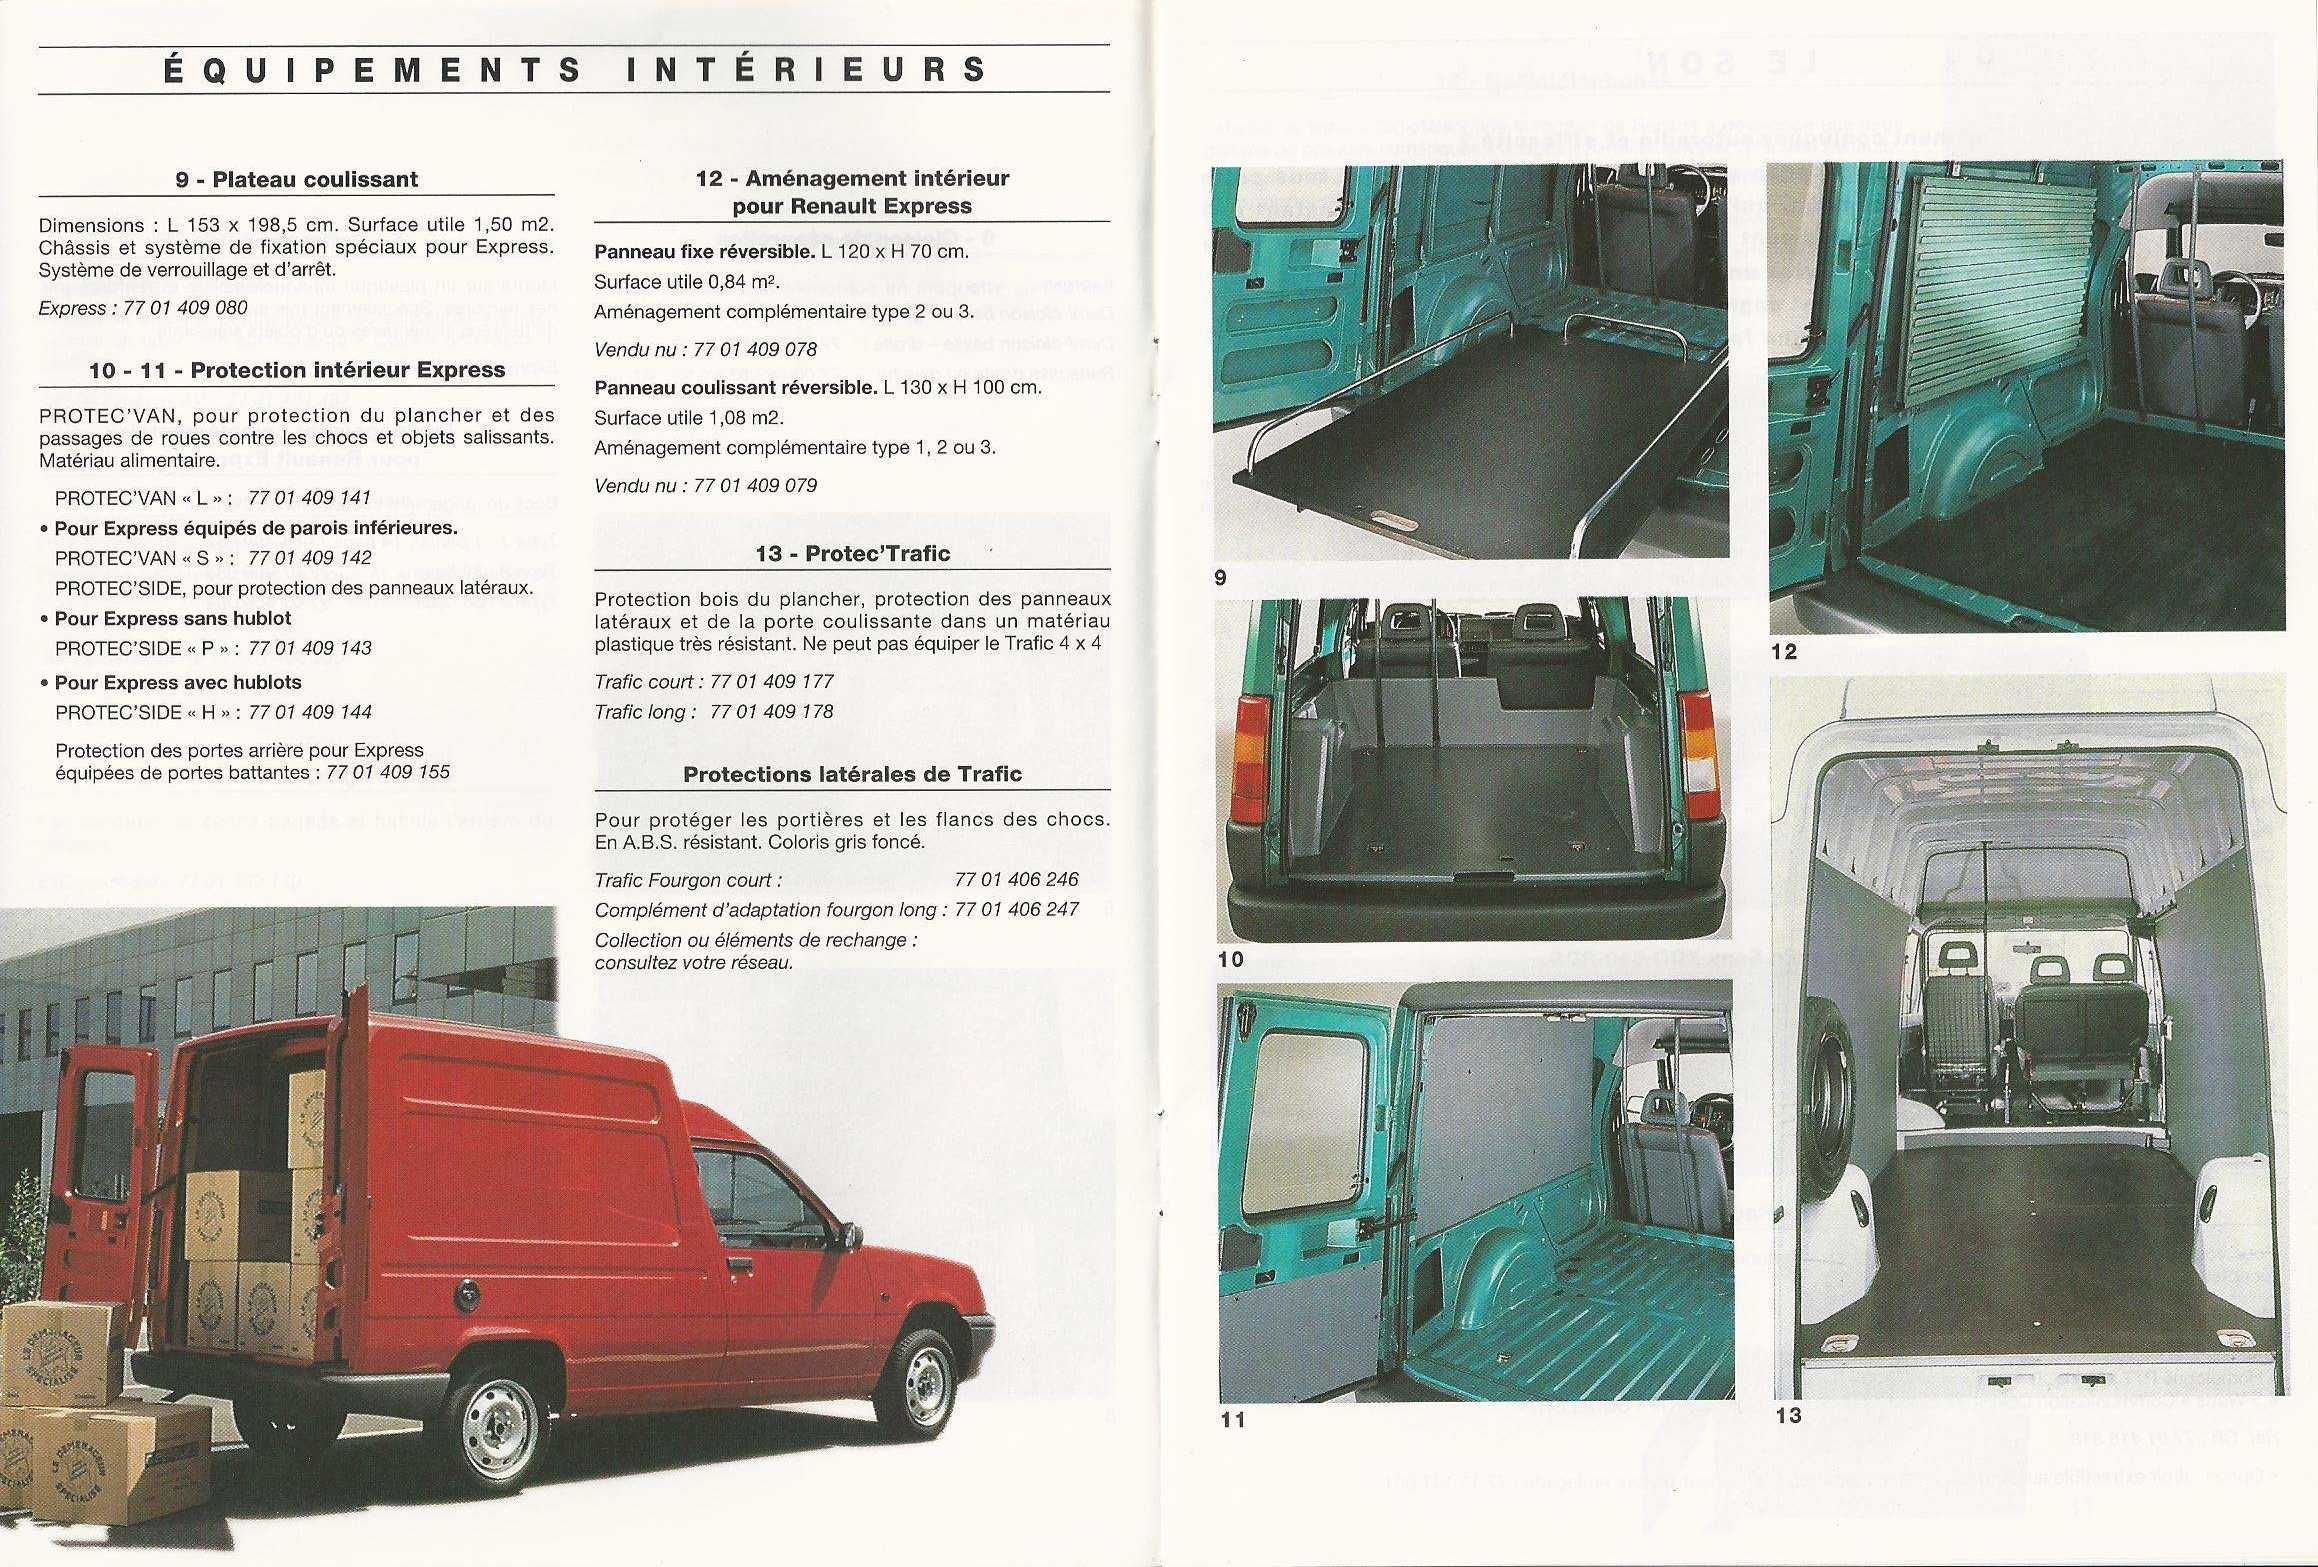 renault vu 1995 4 renault express 1 4 rt 1995 nyvetdupic photos club club caradisiac